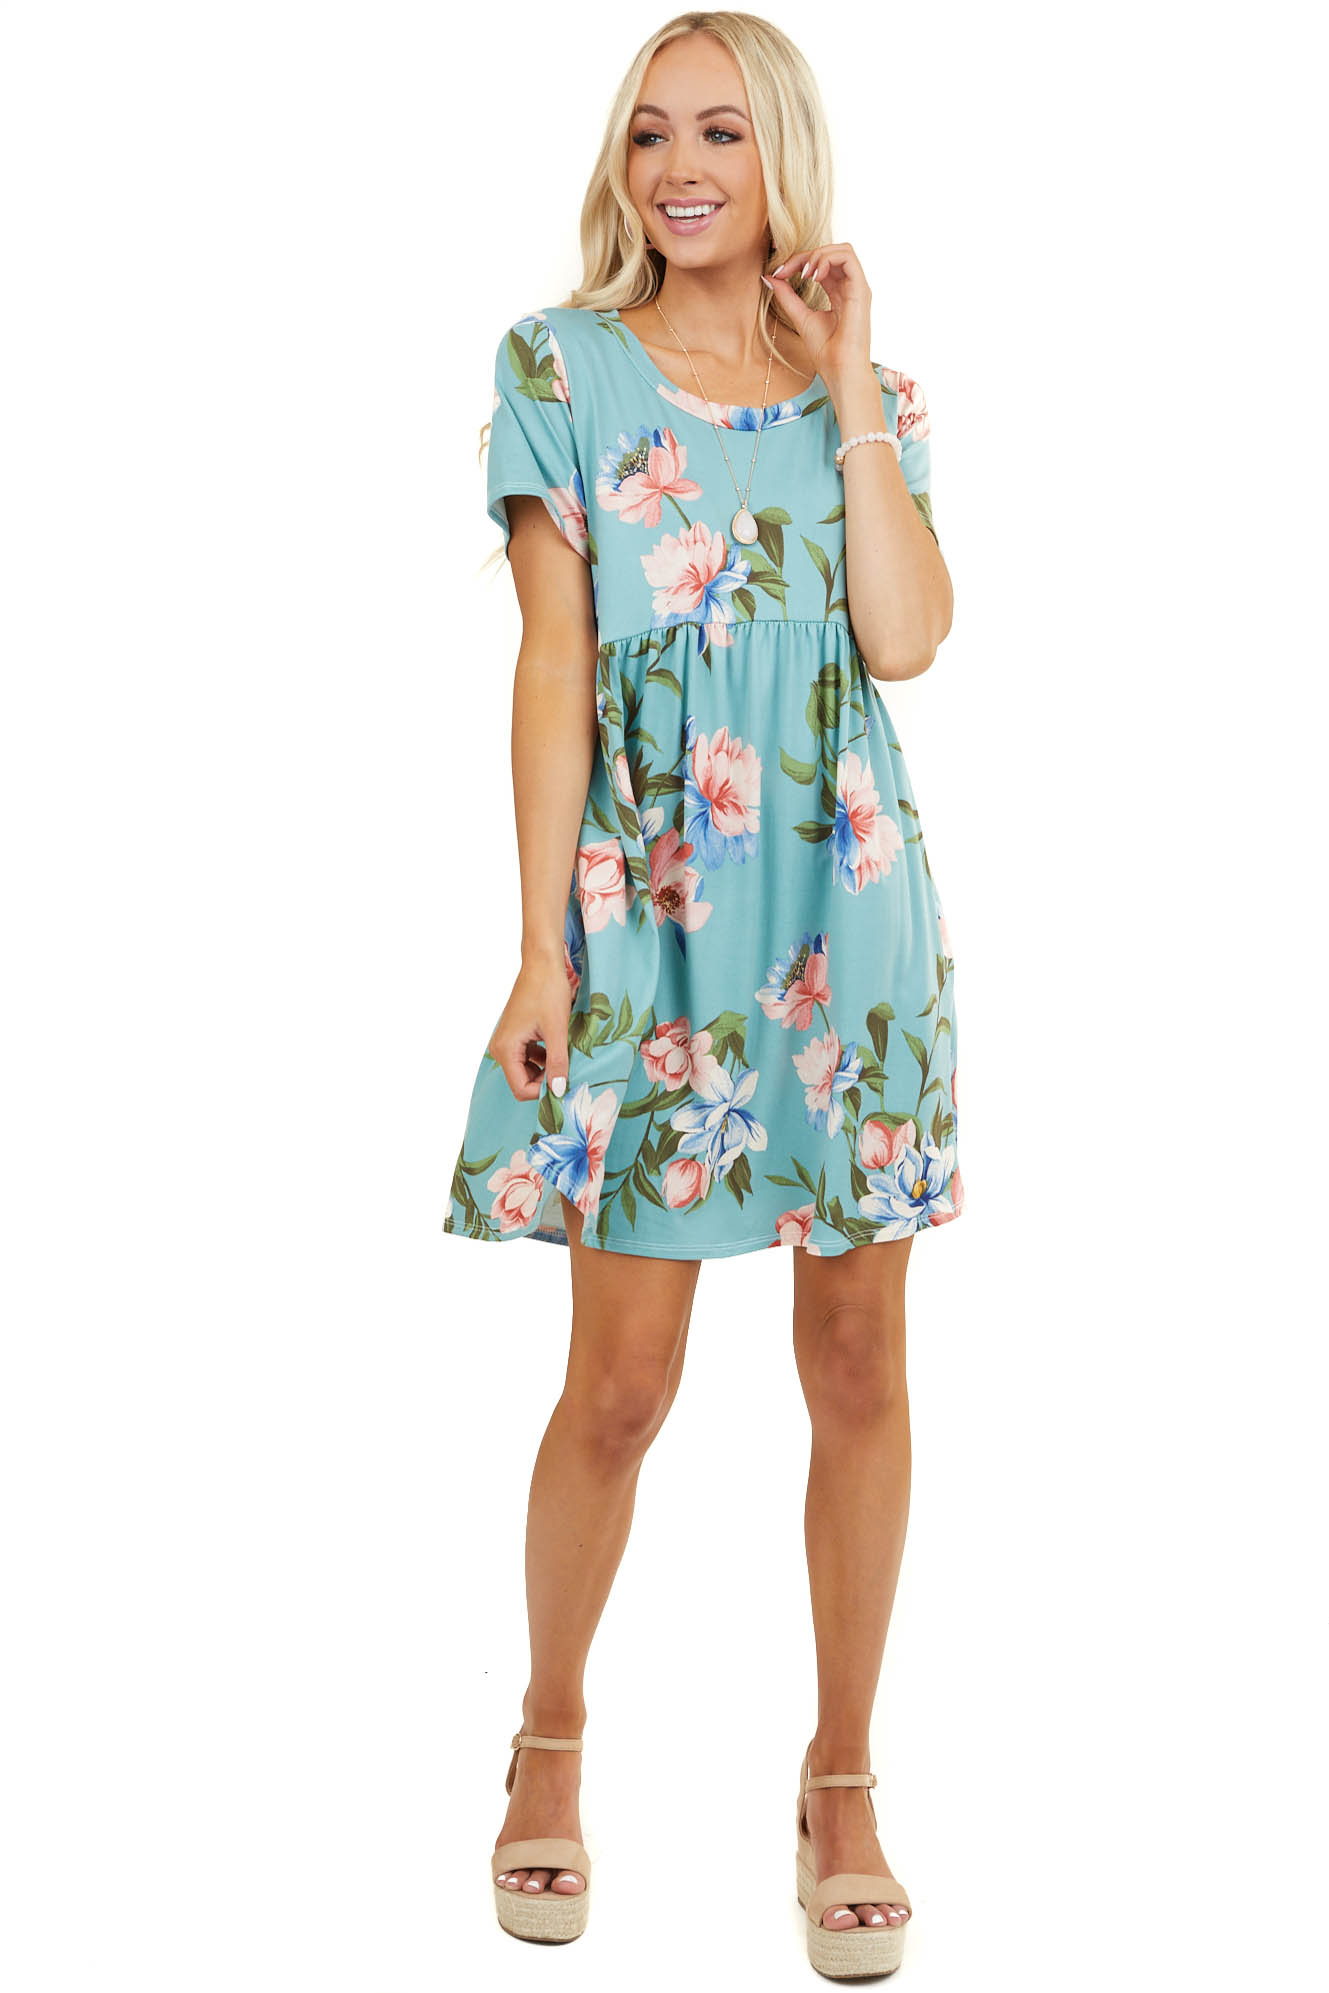 Teal Floral Babydoll Short Dress with Round Neck and Pockets